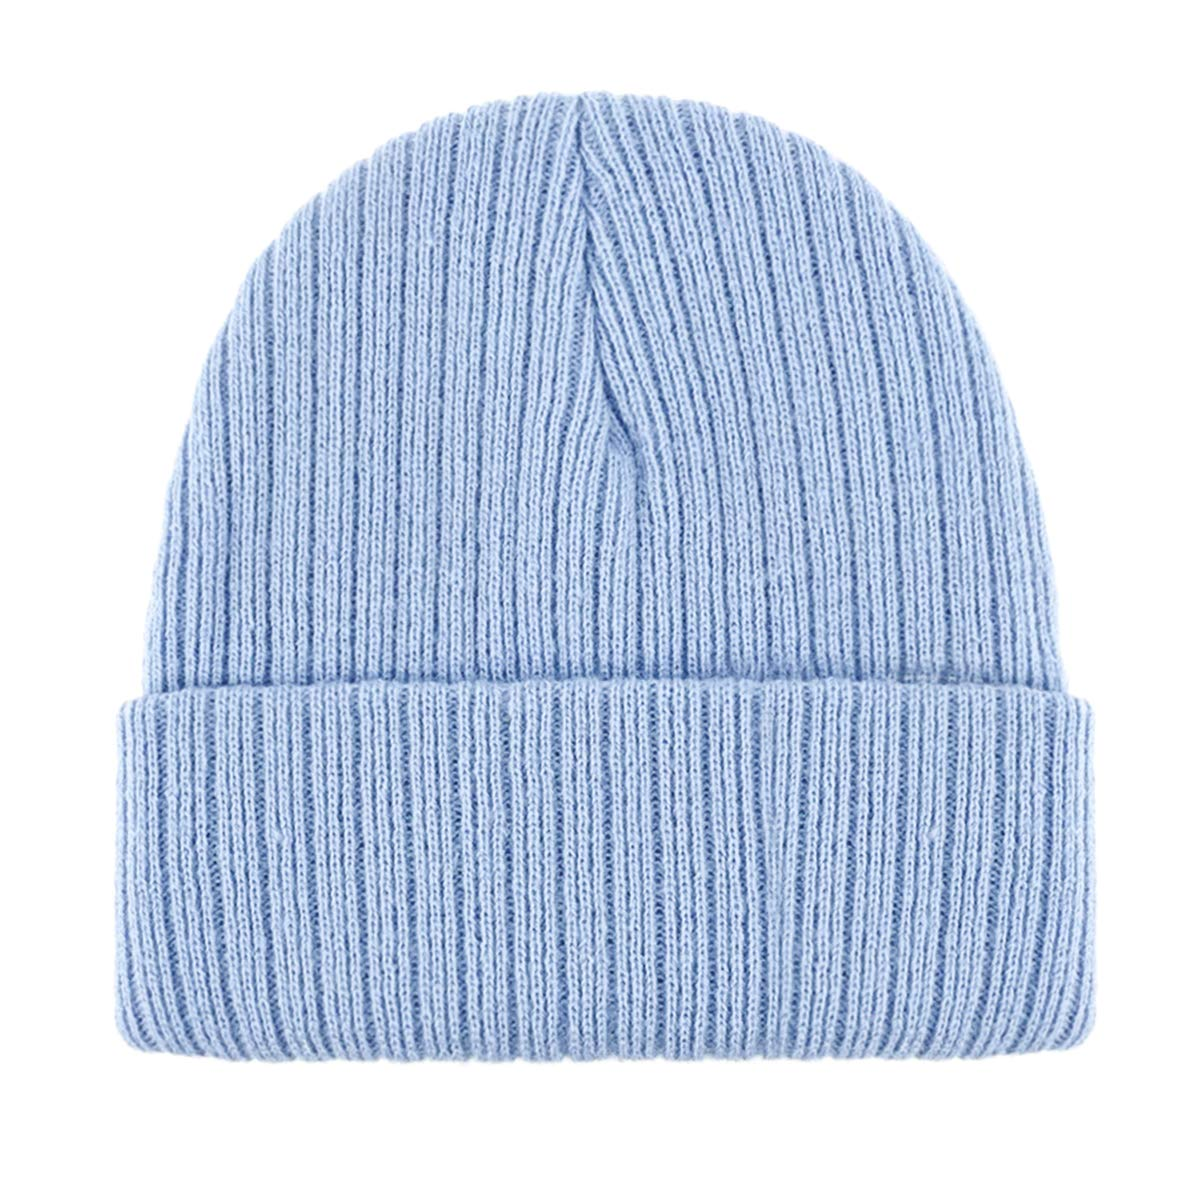 Lamdgbway Boys/Girls Baby Toddler Warm Cable Knitted Beanie Cap Cute Infant Winter Hat for 6M-3 Years Old